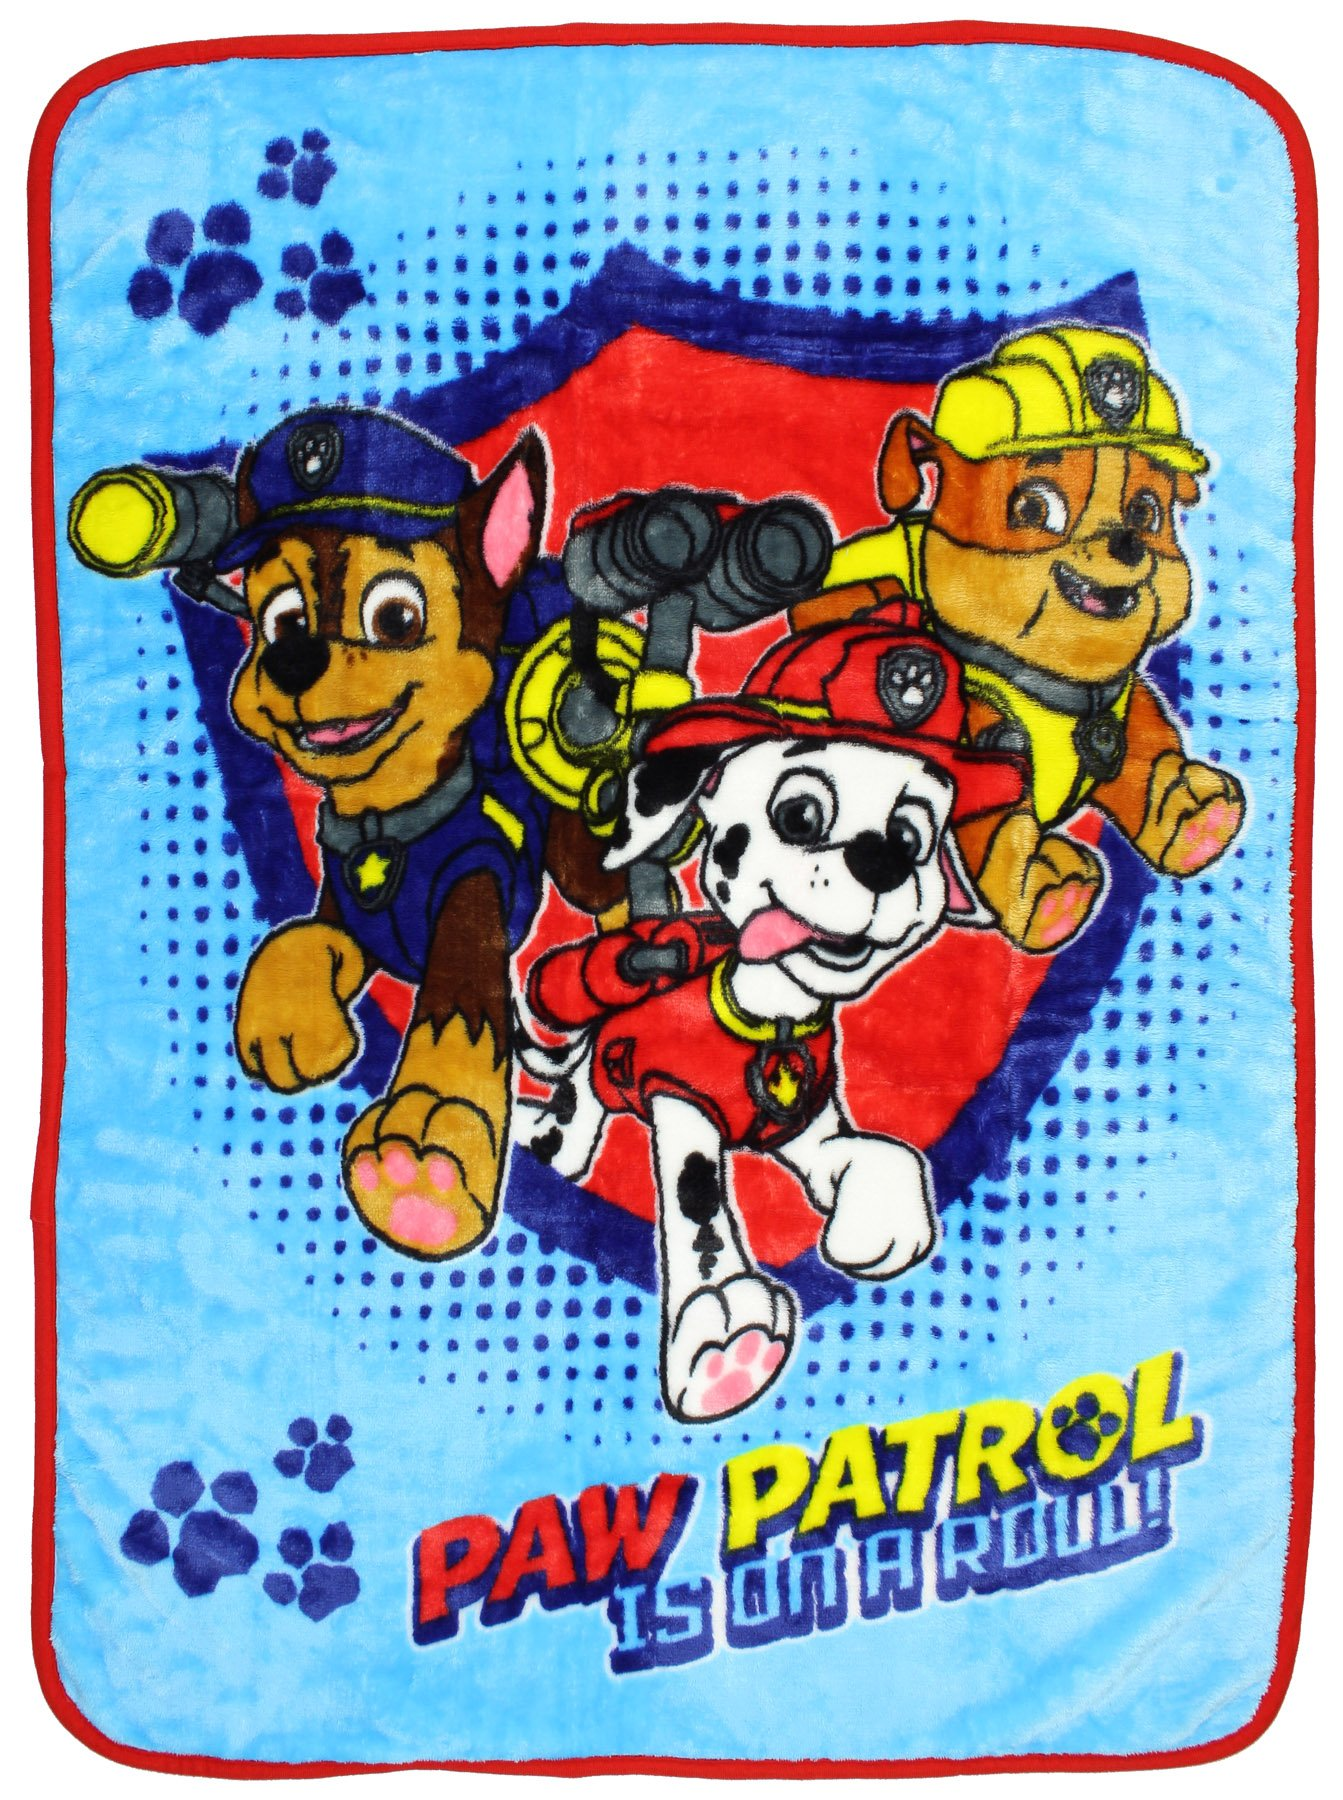 Paw Patrol Chase/Marshall/Rubble Toddler Blanket, Blue by Nickelodeon